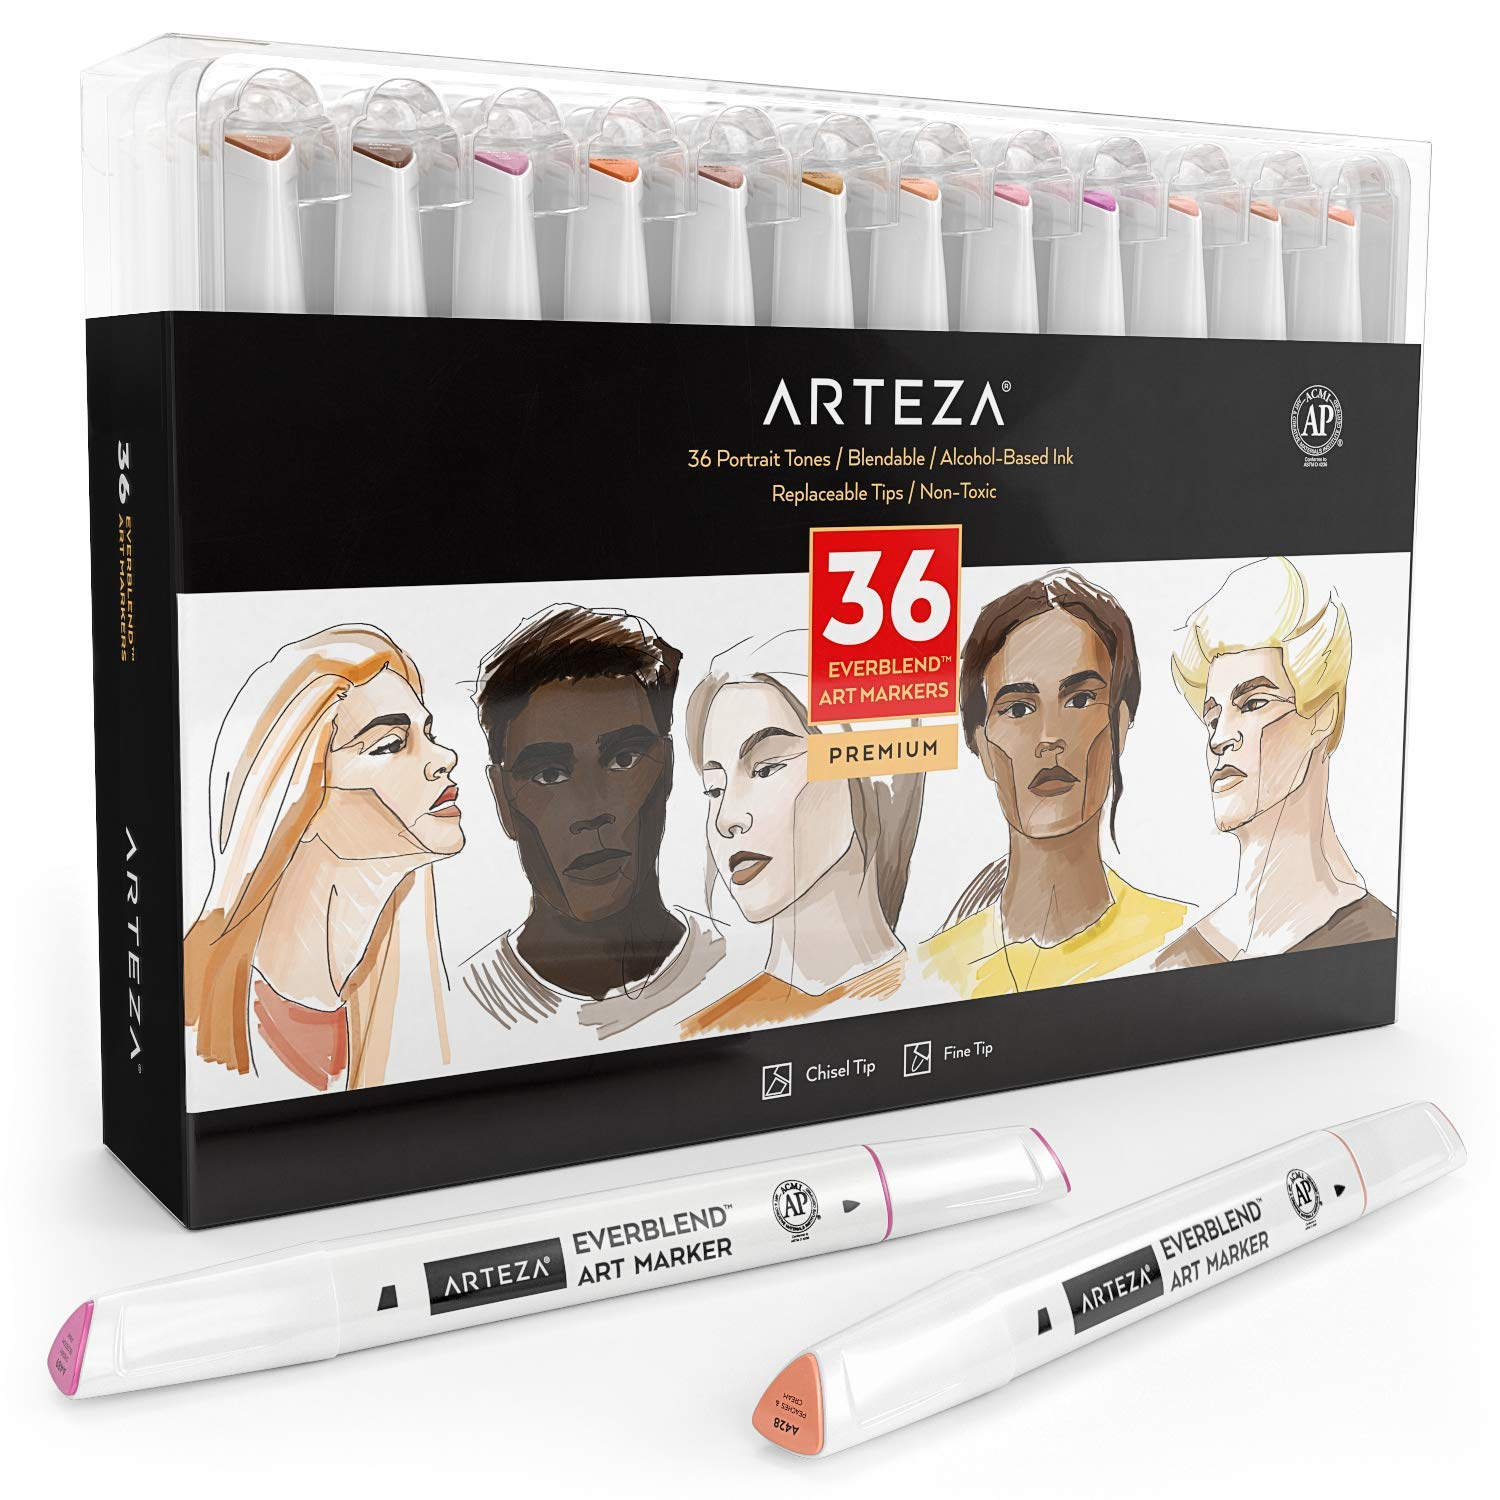 ARTEZA Everblend Skin Tone Art Markers, Set of 36 Colors, Alcohol Based Sketch Markers with Dual Tips (Fine and Broad Chisel) for Painting, Coloring, Sketching and Drawing